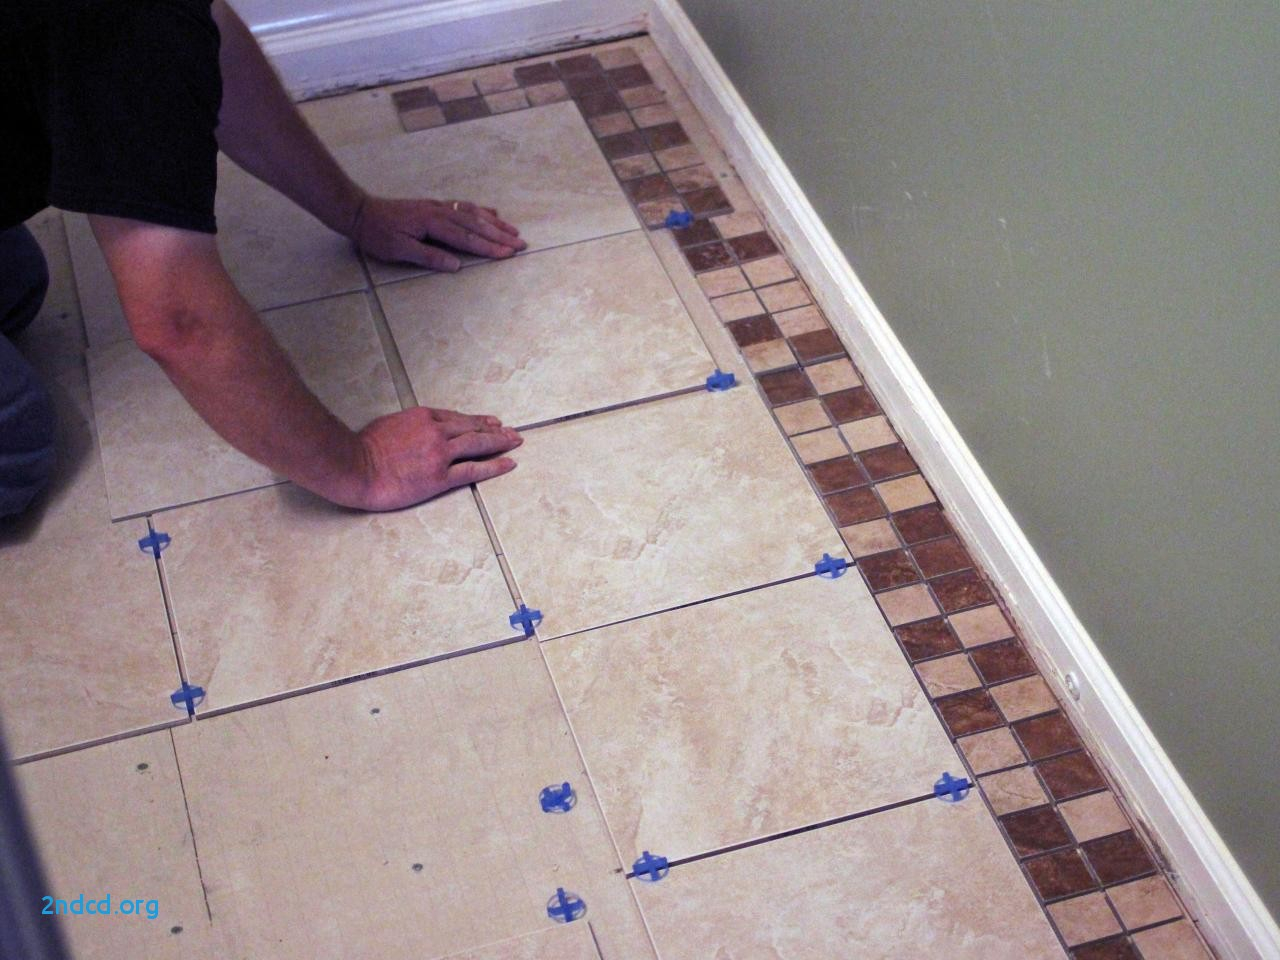 Glamorous Best Of Easy To Install Bathroom Flooring - 2Ndcd : 2Ndcd for Inspirational Easy To Install Bathroom Flooring